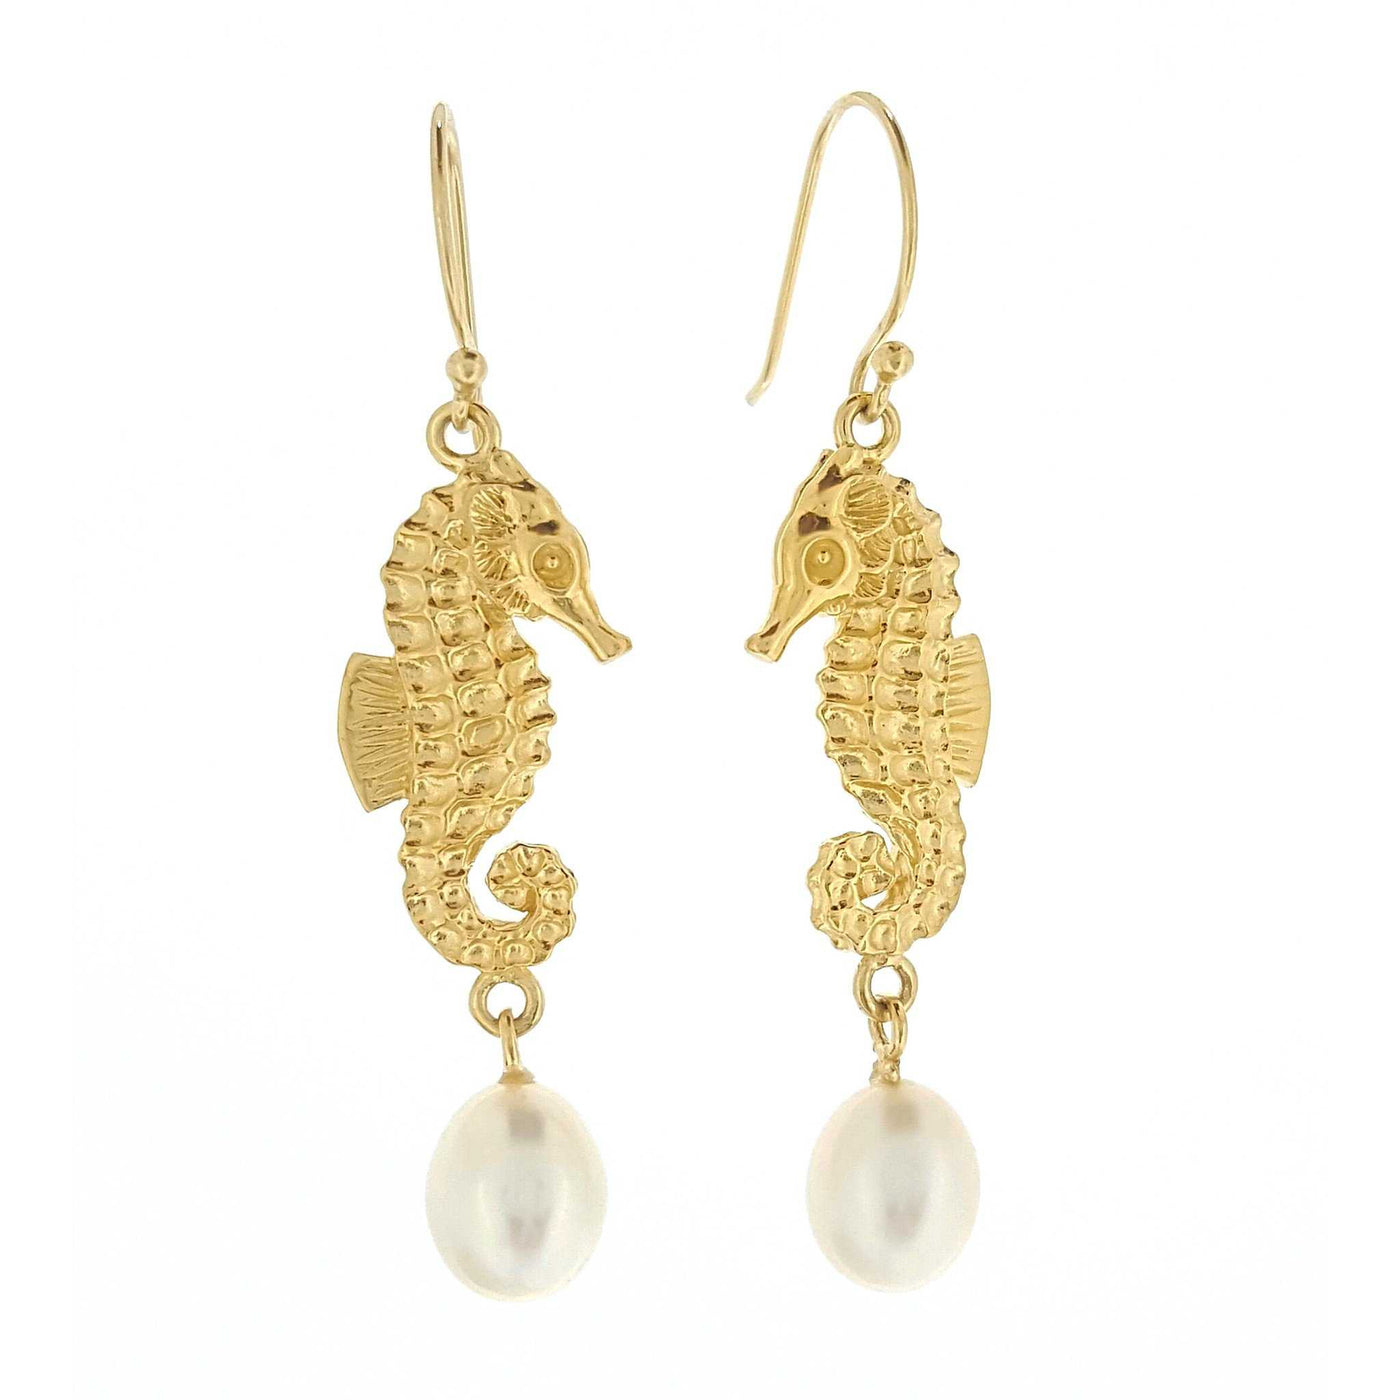 Pearl Earrings 'Seahorse' - The Courthouse Collection